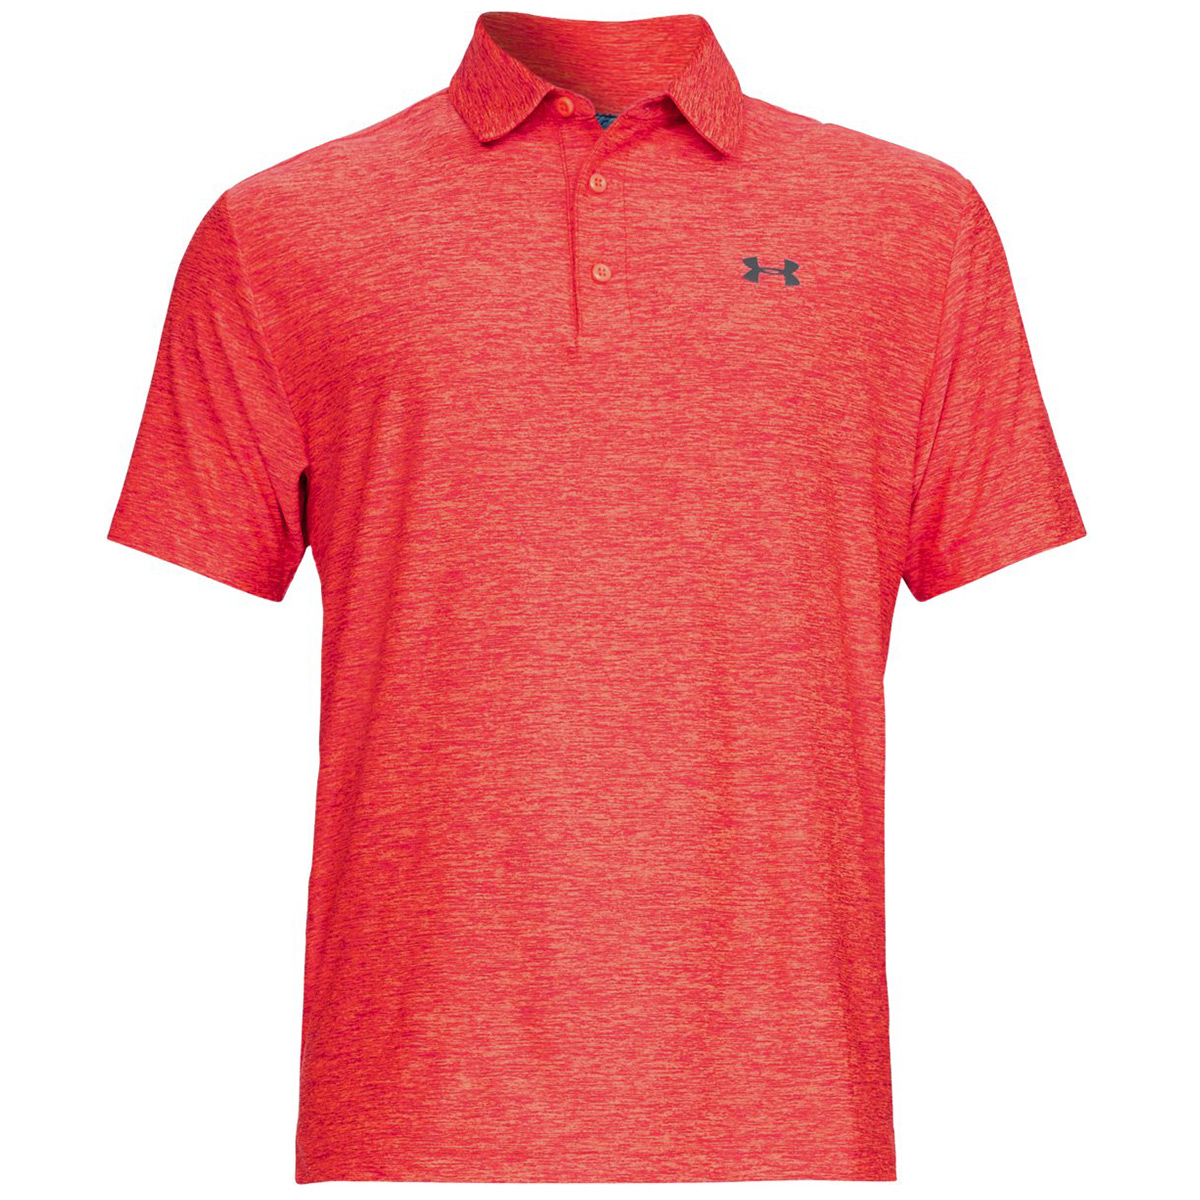 Under-Armour-Mens-UA-Playoff-Performance-Golf-Polo-Shirt-42-OFF-RRP thumbnail 37